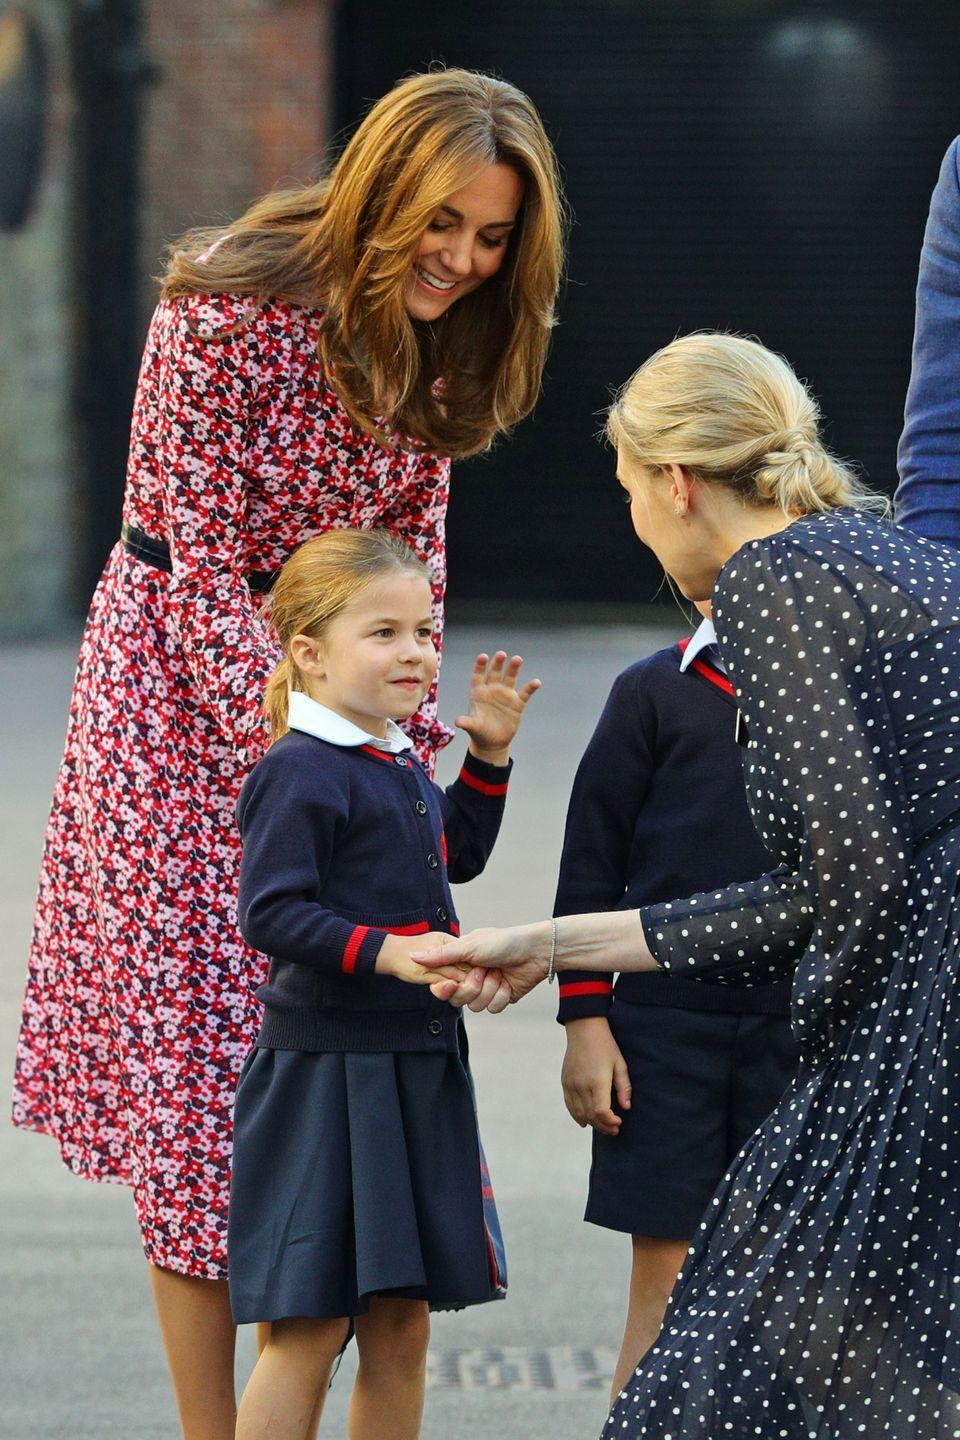 <p>Princess Charlotte started in Reception class at Thomas' school in London, where her brother Prince George is two years ahead of her, in September 2019. Just like George, it's believed Charlotte is known as 'Charlotte Cambridge' to her school friends, considering her official title, 'Her Royal Highness Princess Charlotte of Cambridge' is a bit of a mouthful to say during the register.</p>